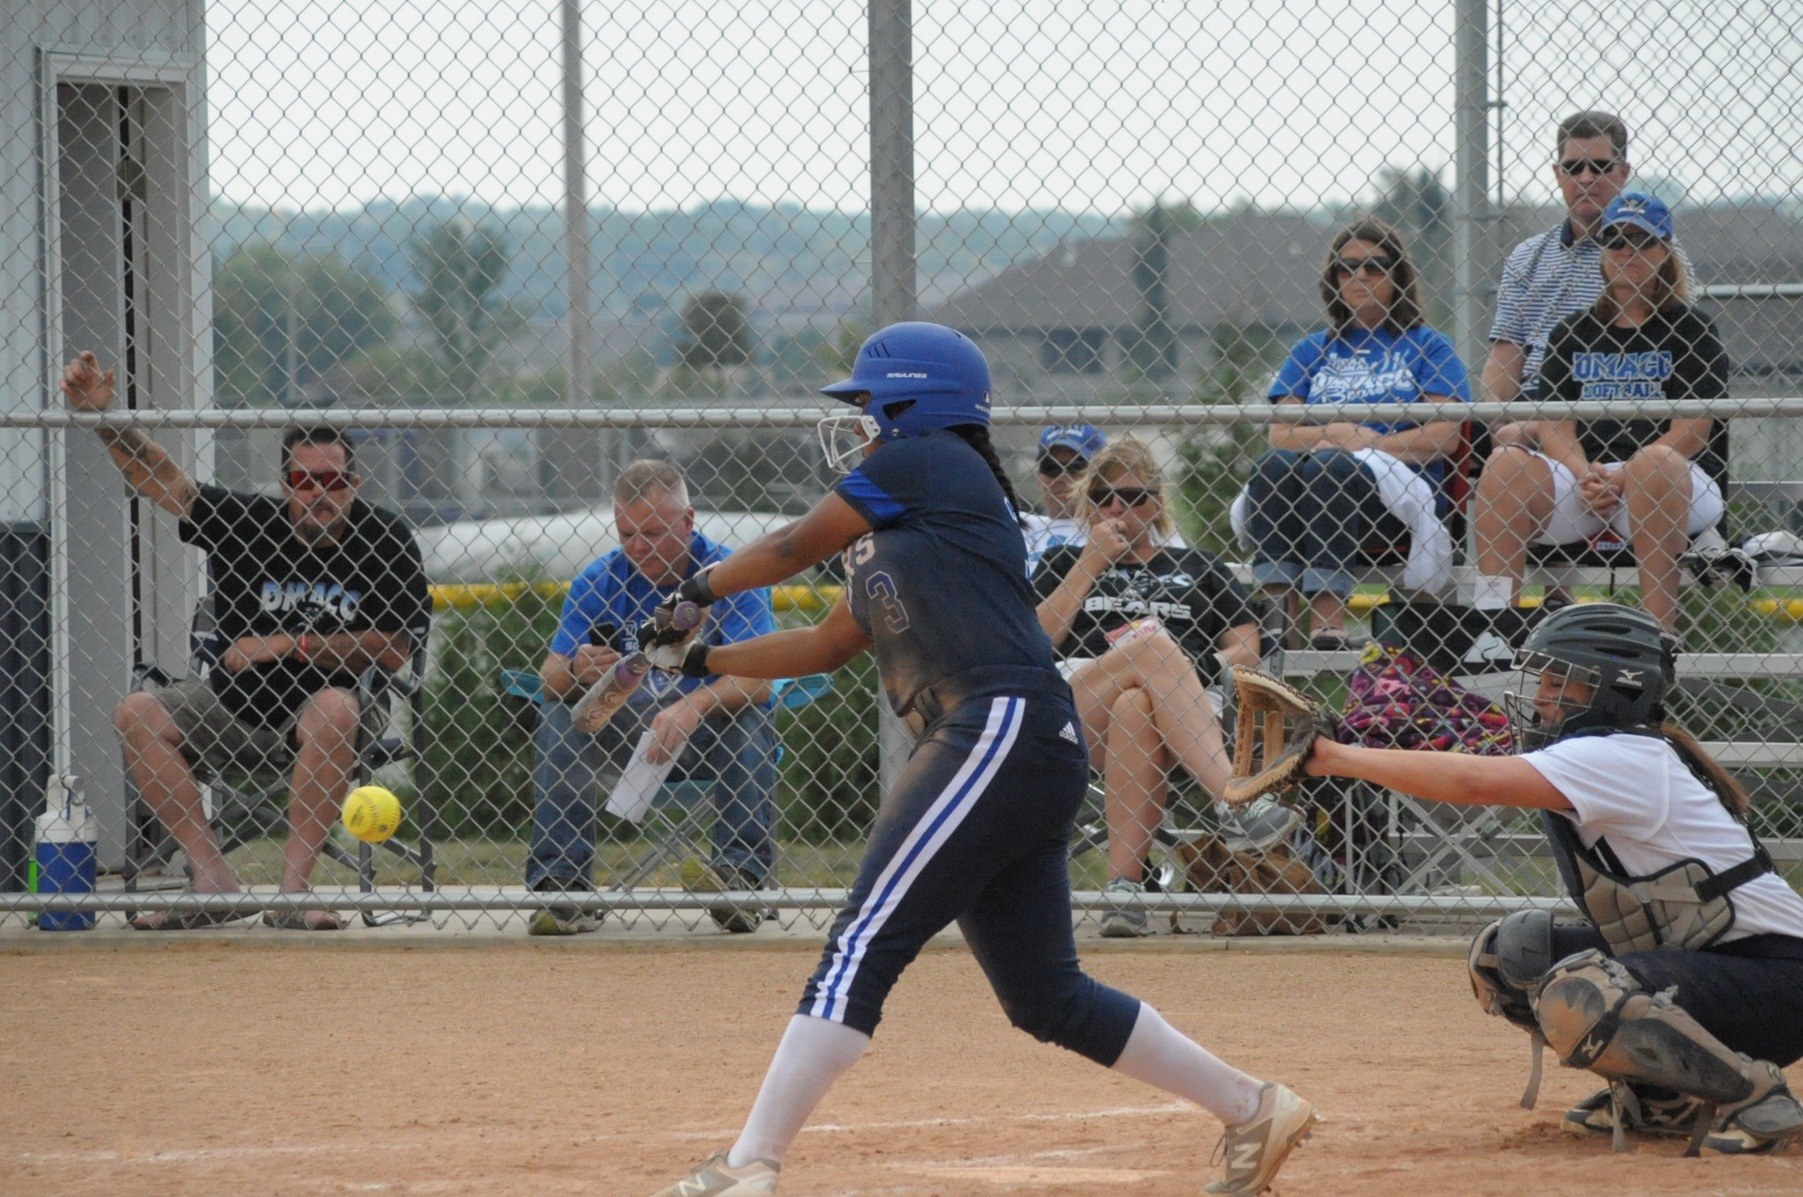 DMACC Softball Team Improves to 10-0 with Three Victories